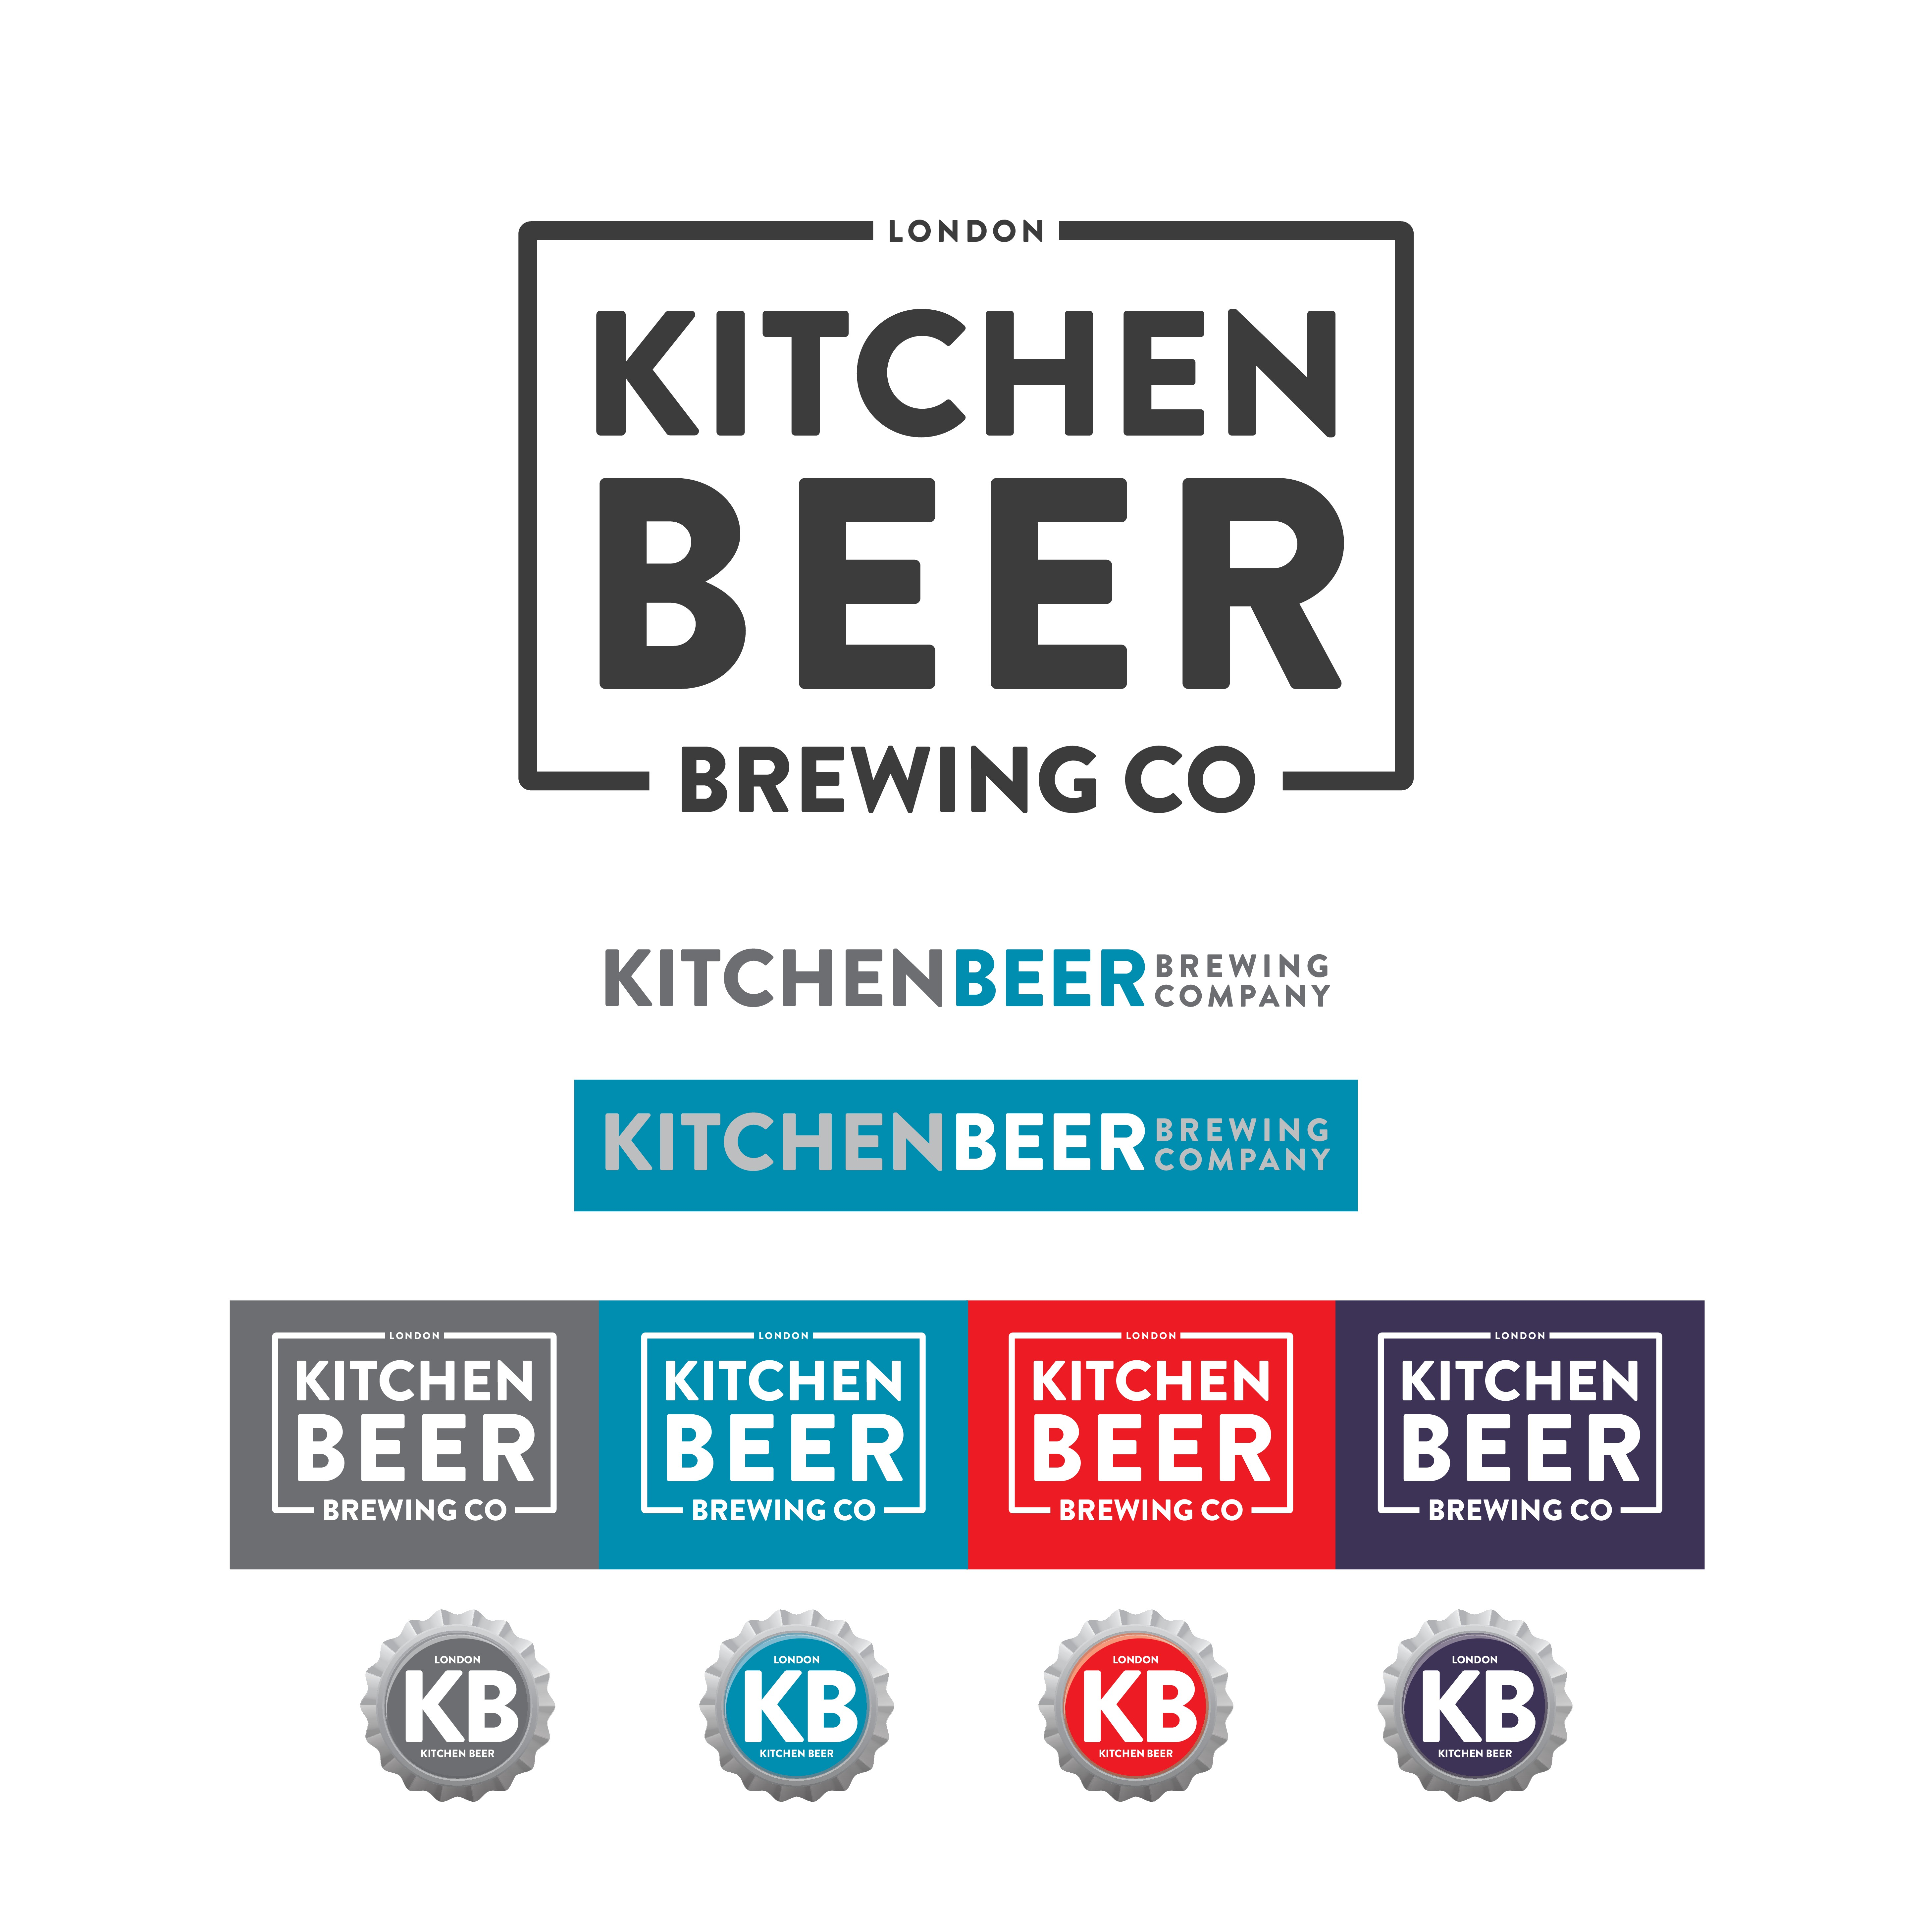 Clean and modern logo design needed for upcoming London based start up craft brewery